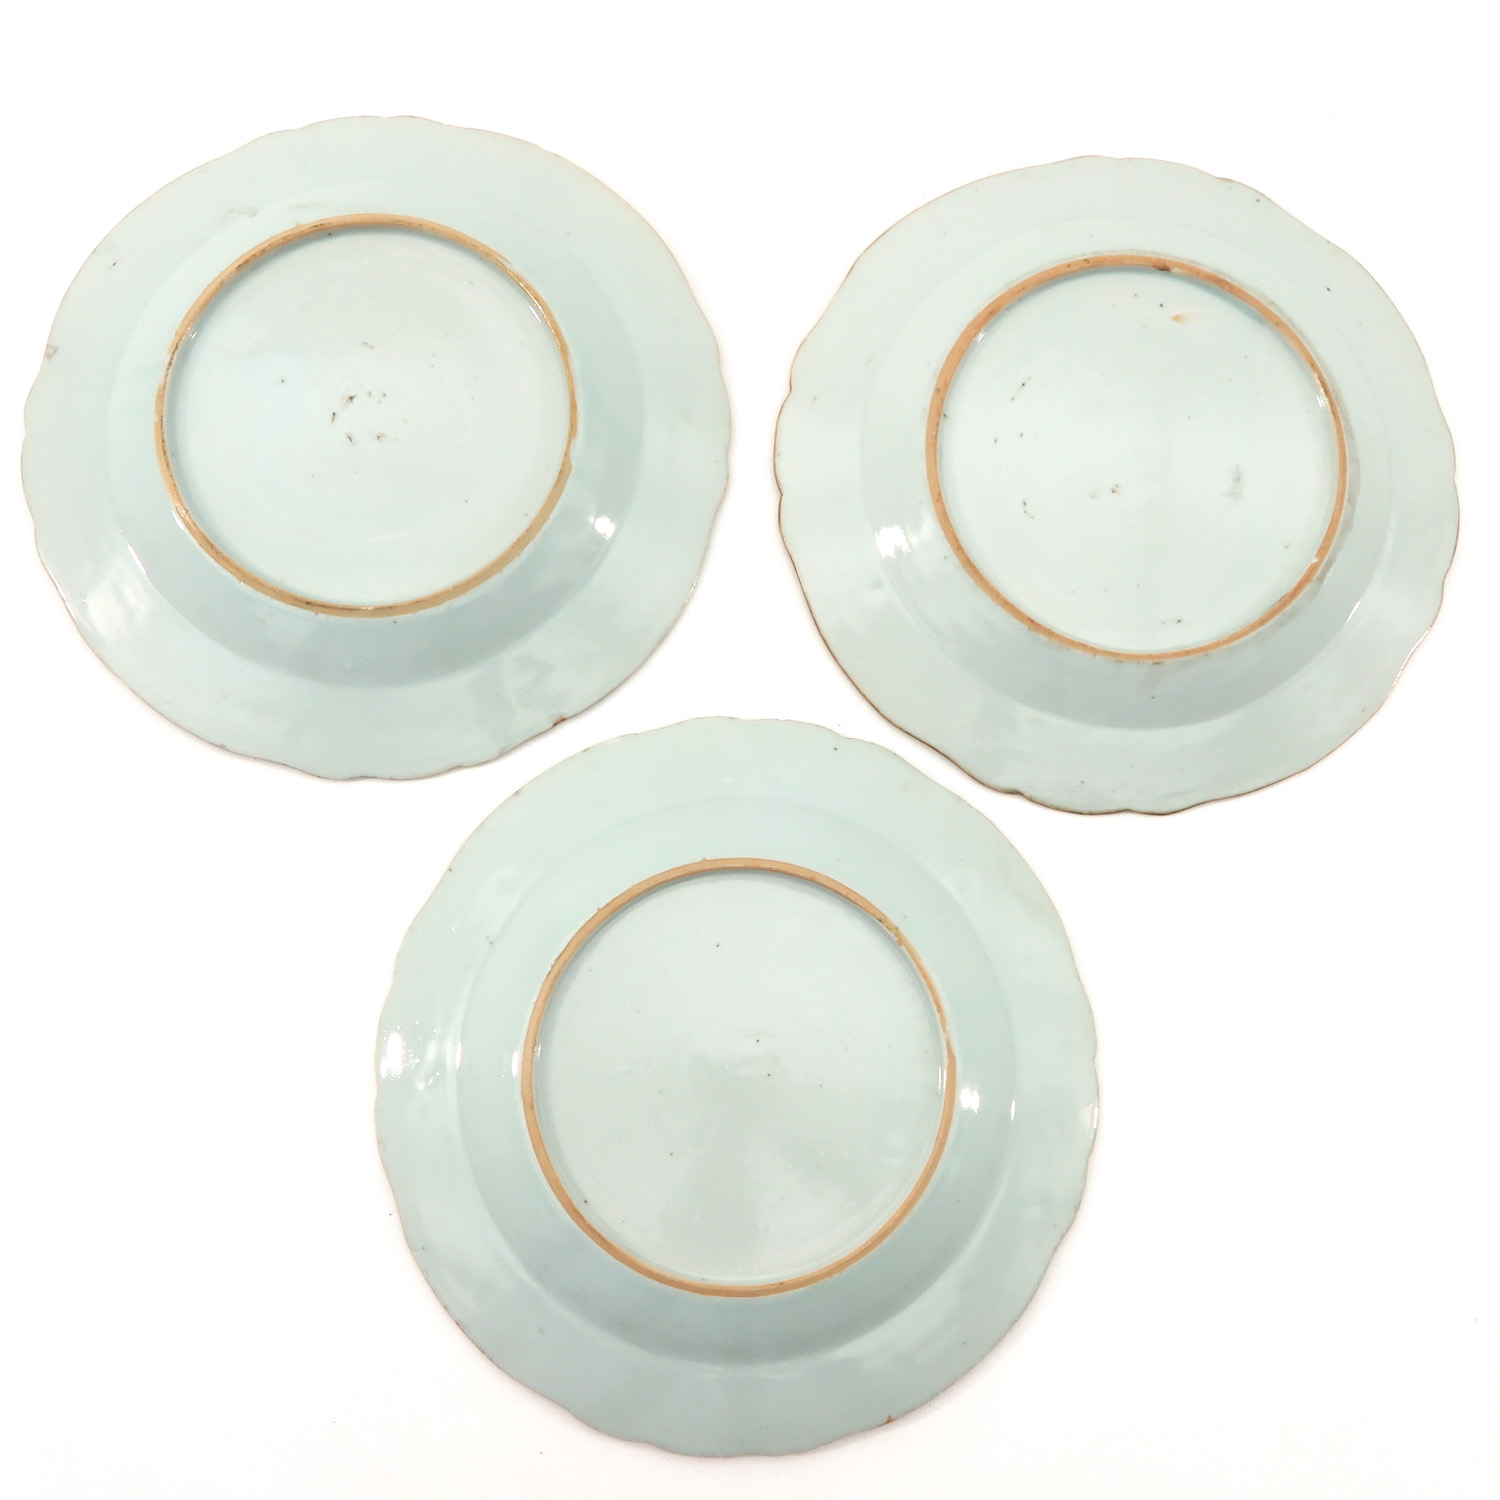 A Series of 5 Famille Rose Plates - Image 4 of 9